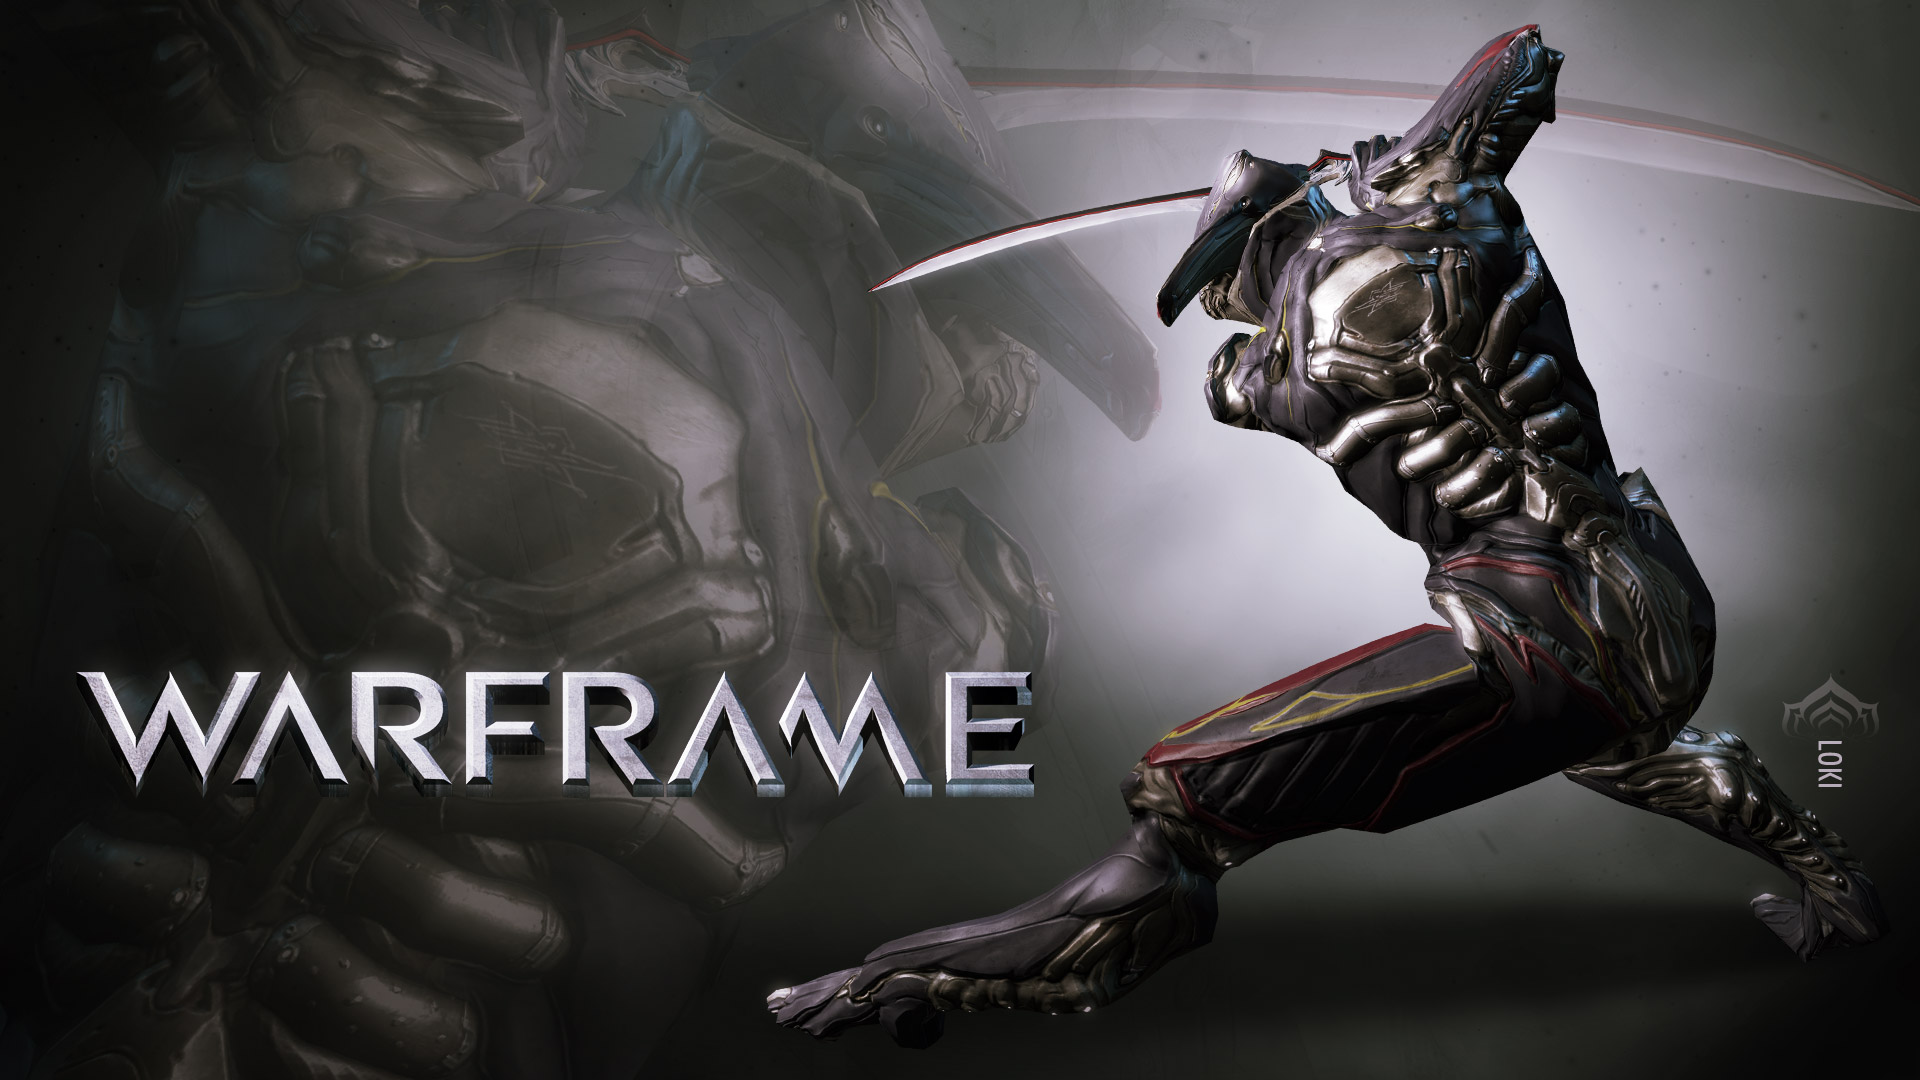 Mmo 39 s images warframe hd wallpaper and background photos - Warframe background ...